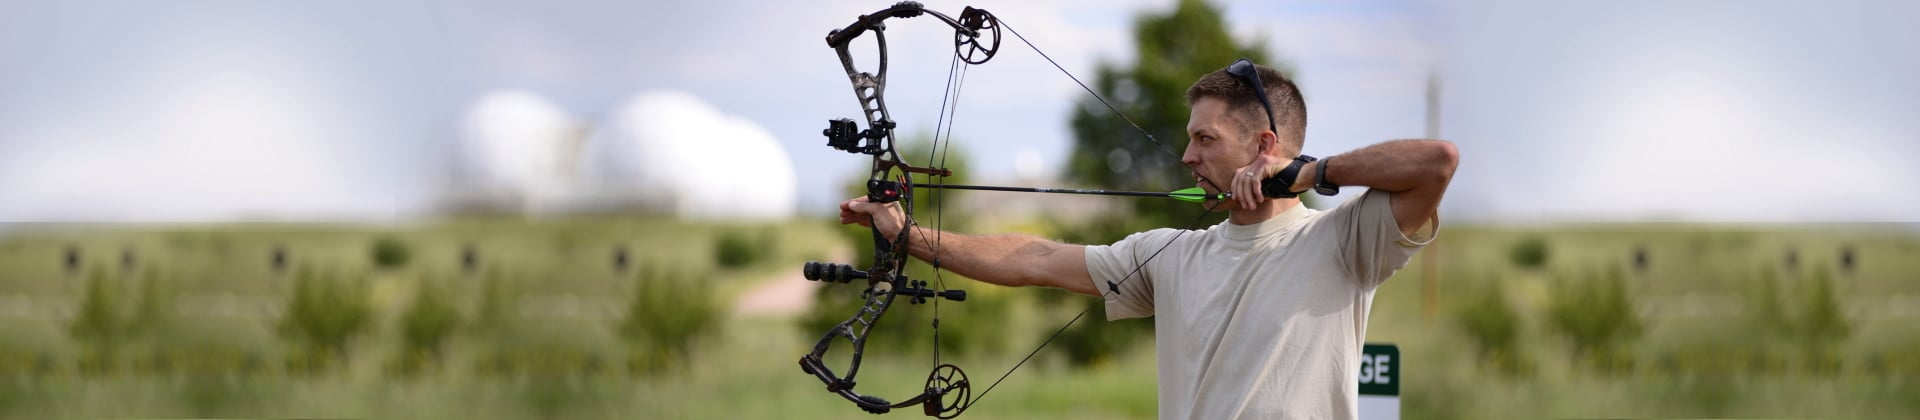 How to Shoot a Compound Bow - Expert Guide